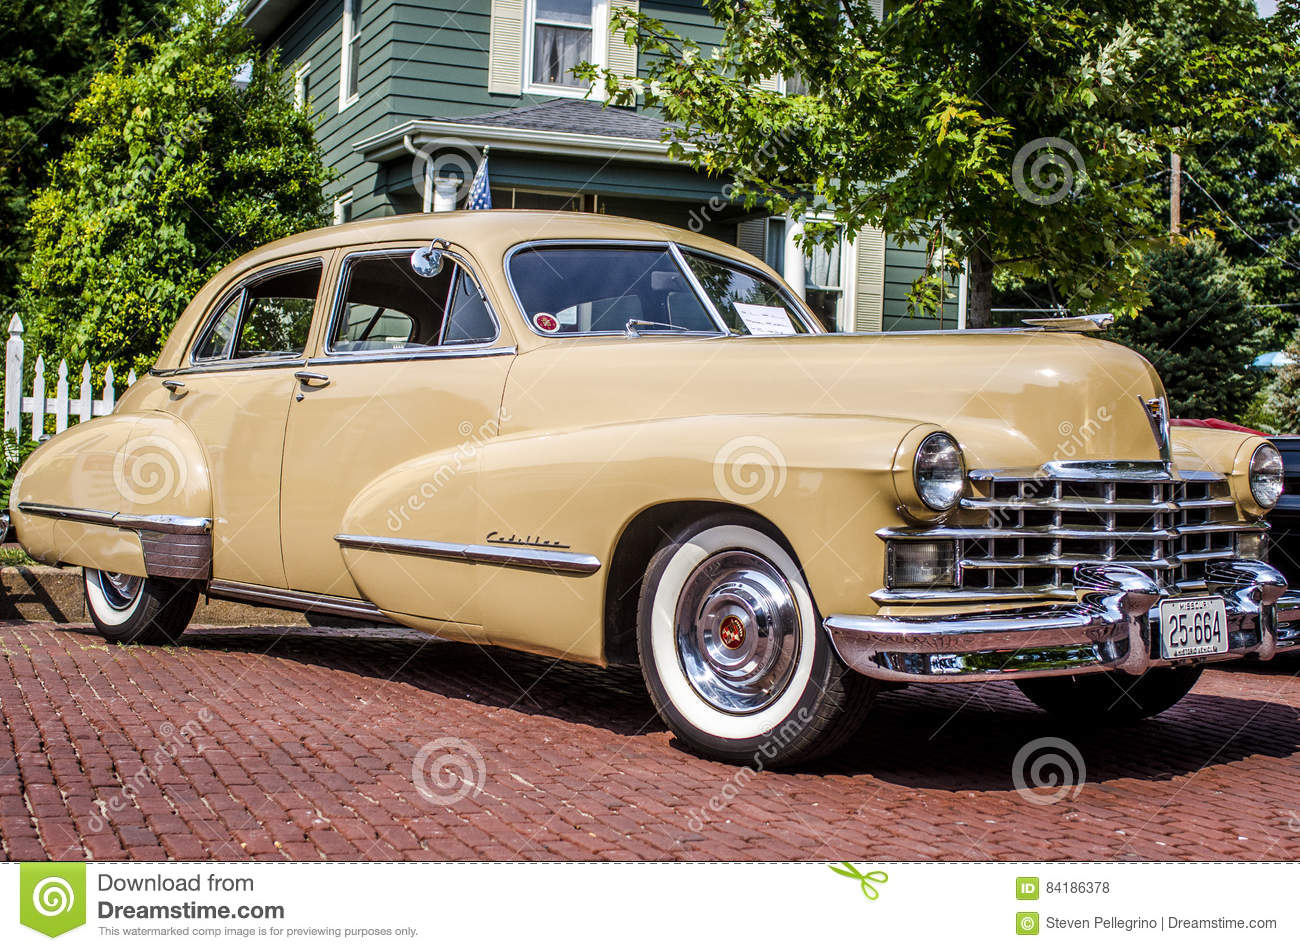 Classic tan Cadillac editorial stock photo. Image of vintage - 84186378